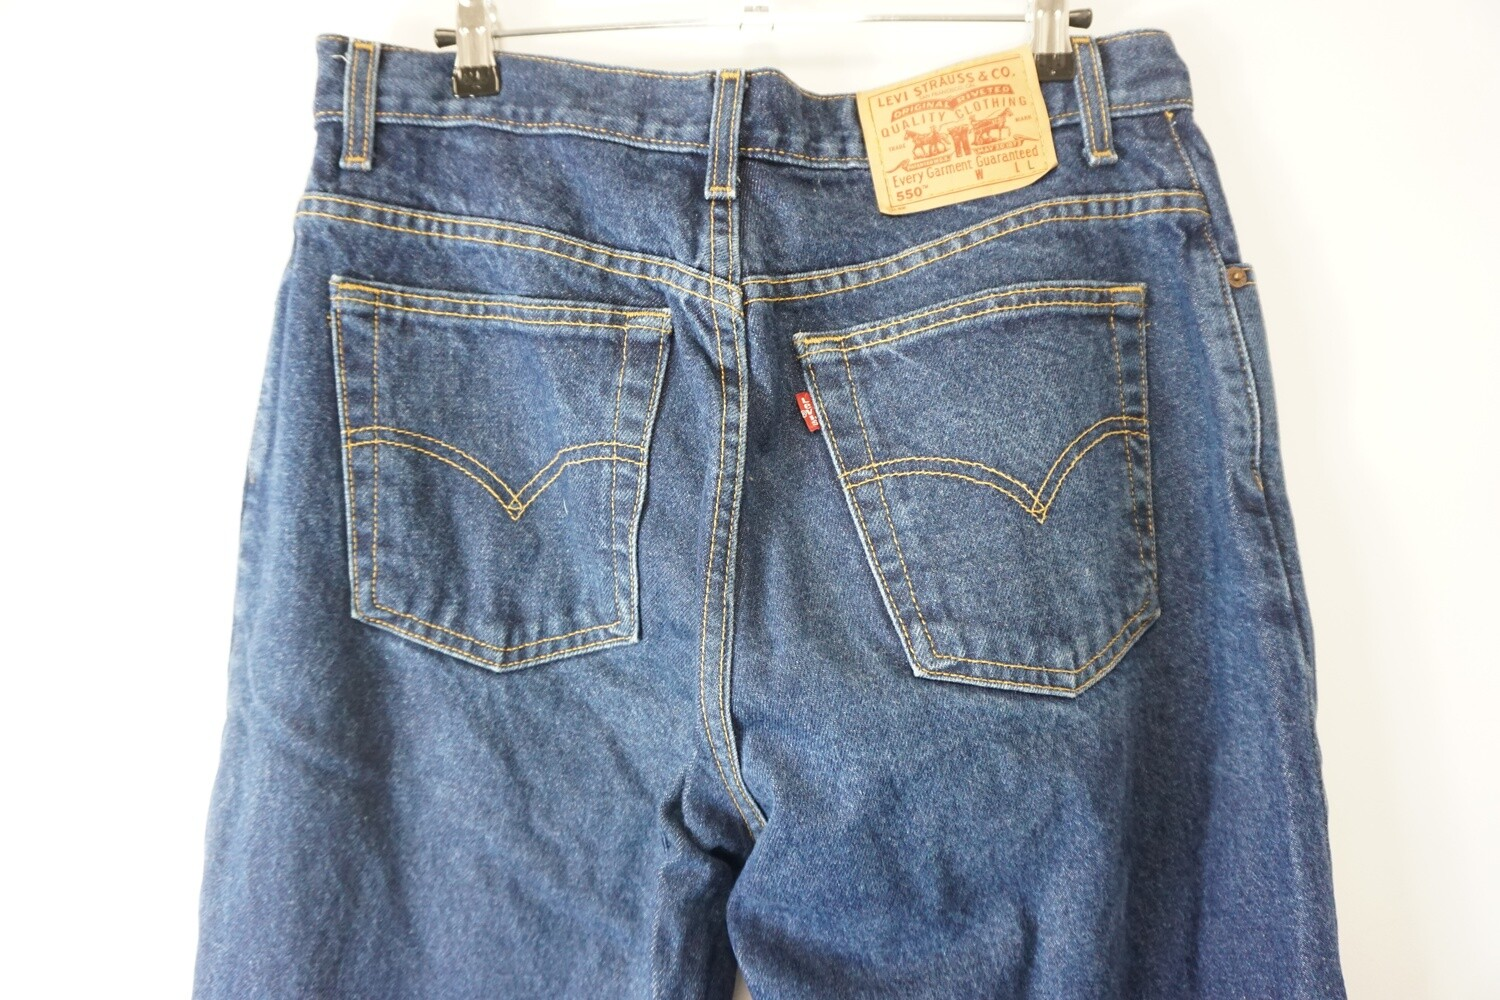 Levi's 550 Jeans Size 14 Made In The USA